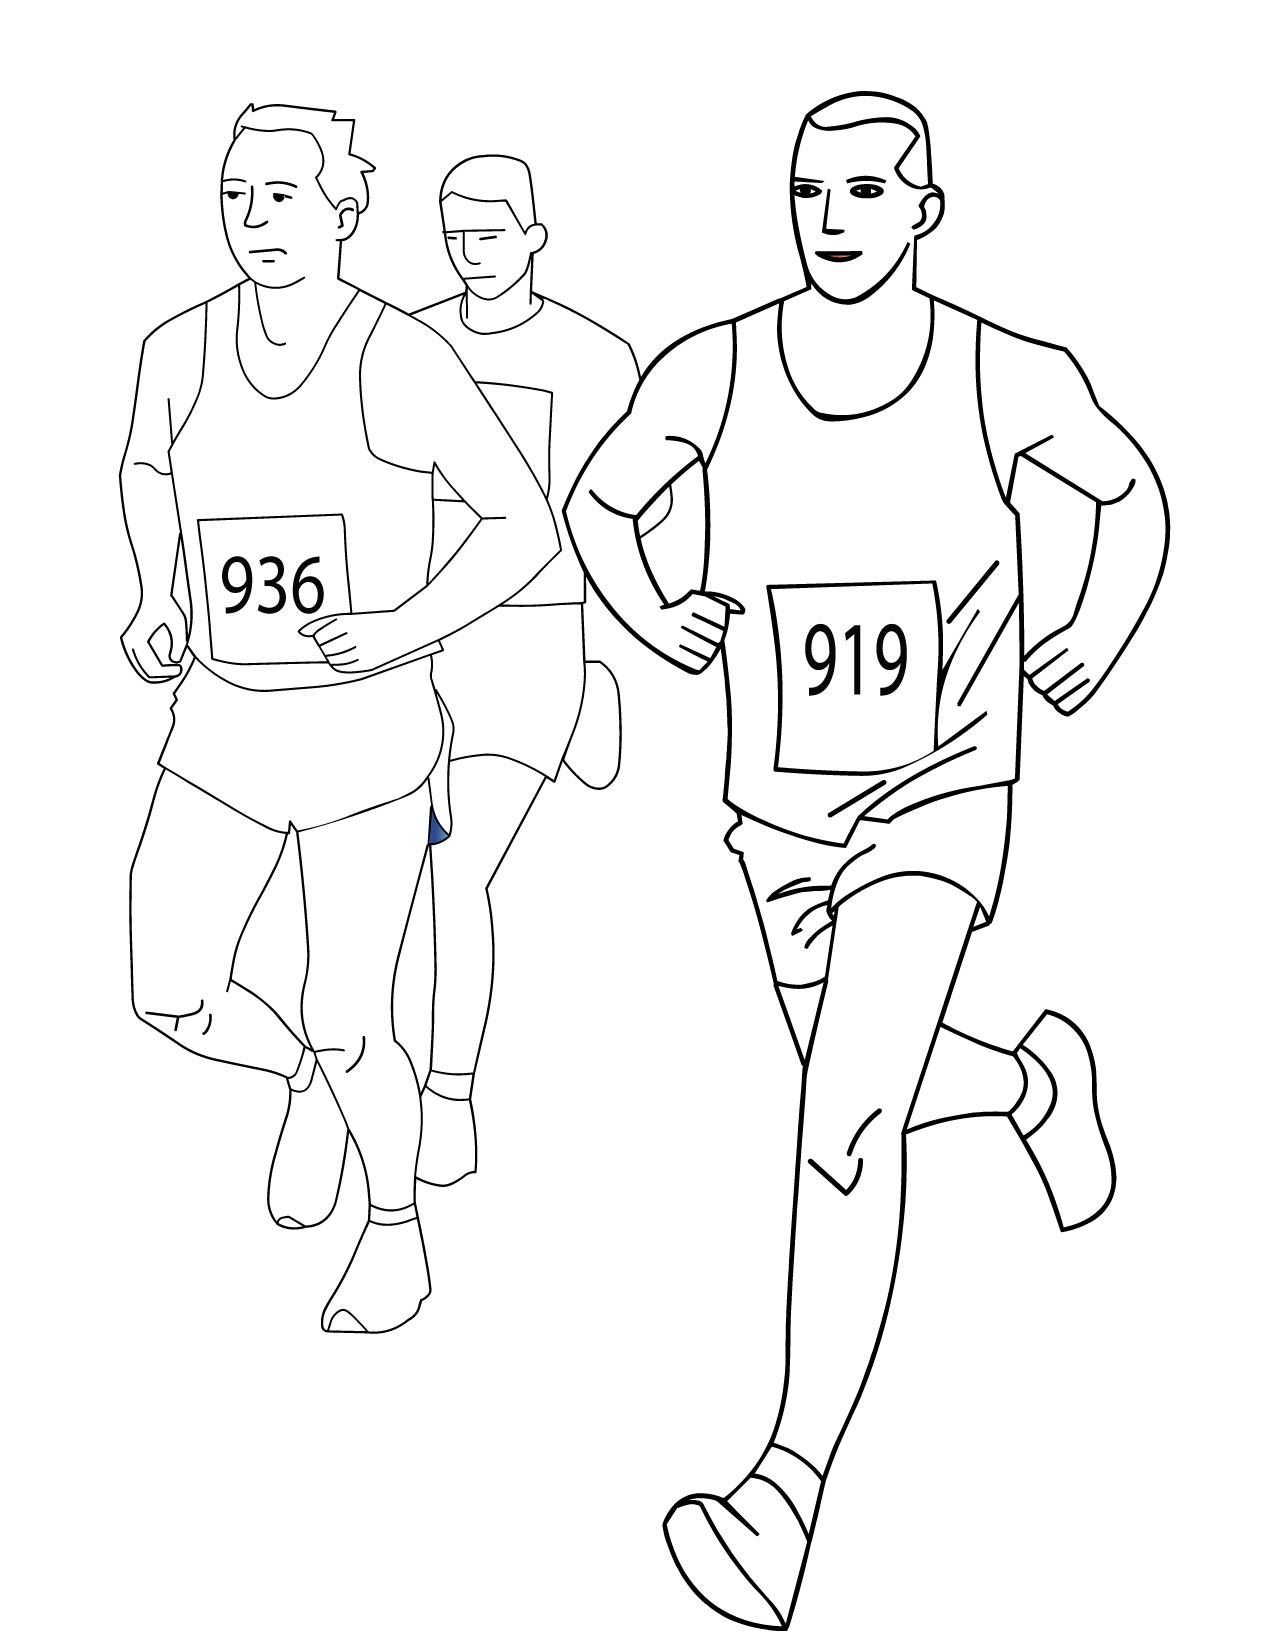 running a race coloring pages - photo#13